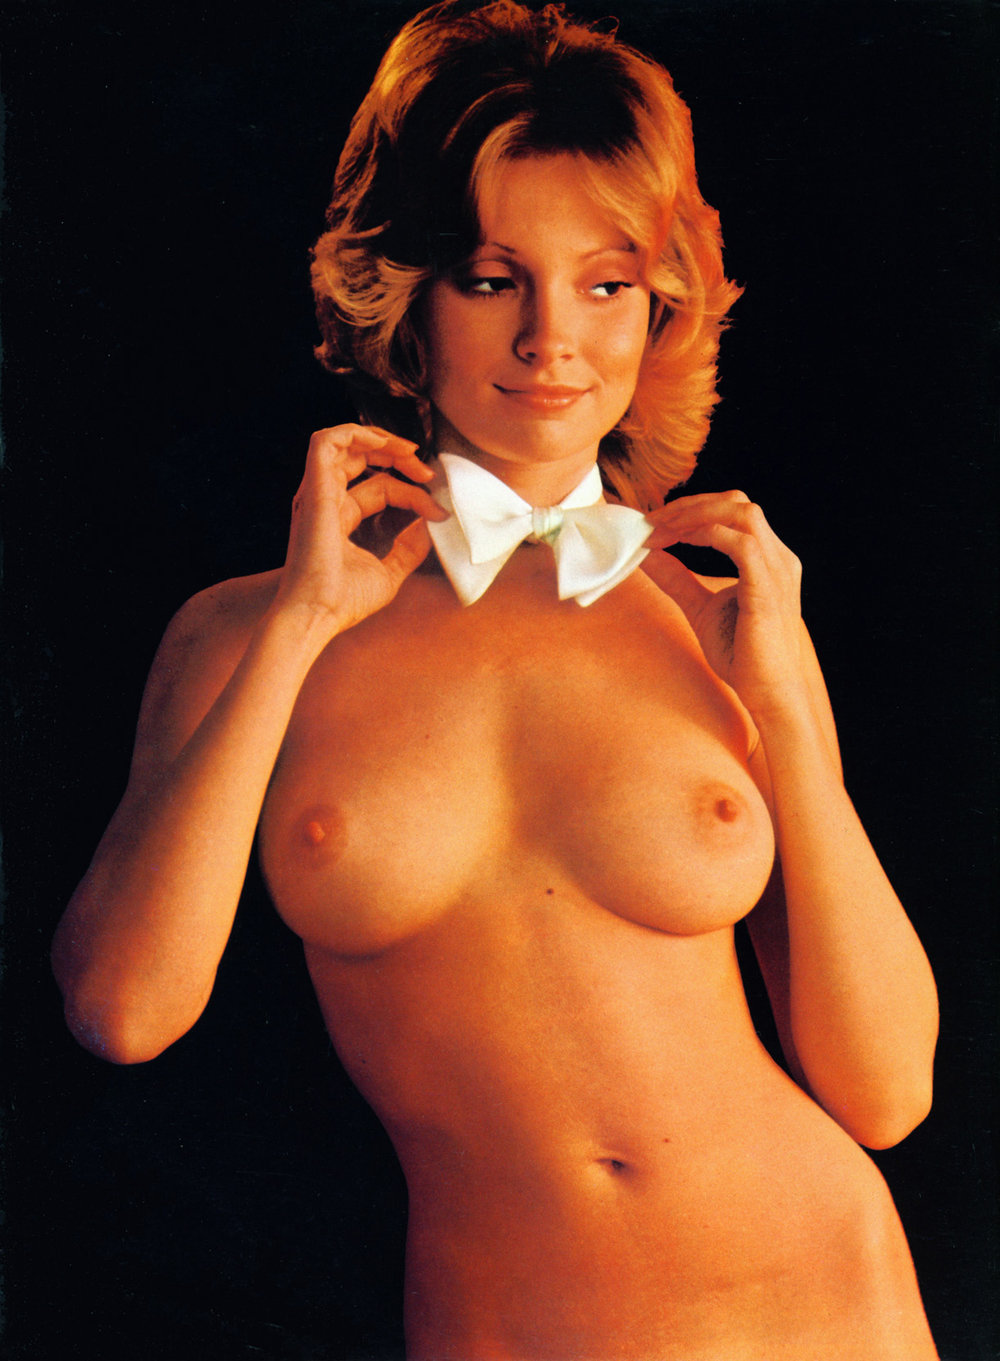 Cyndi Wood Playboy Playmate Of The Year 1974 08.jpg